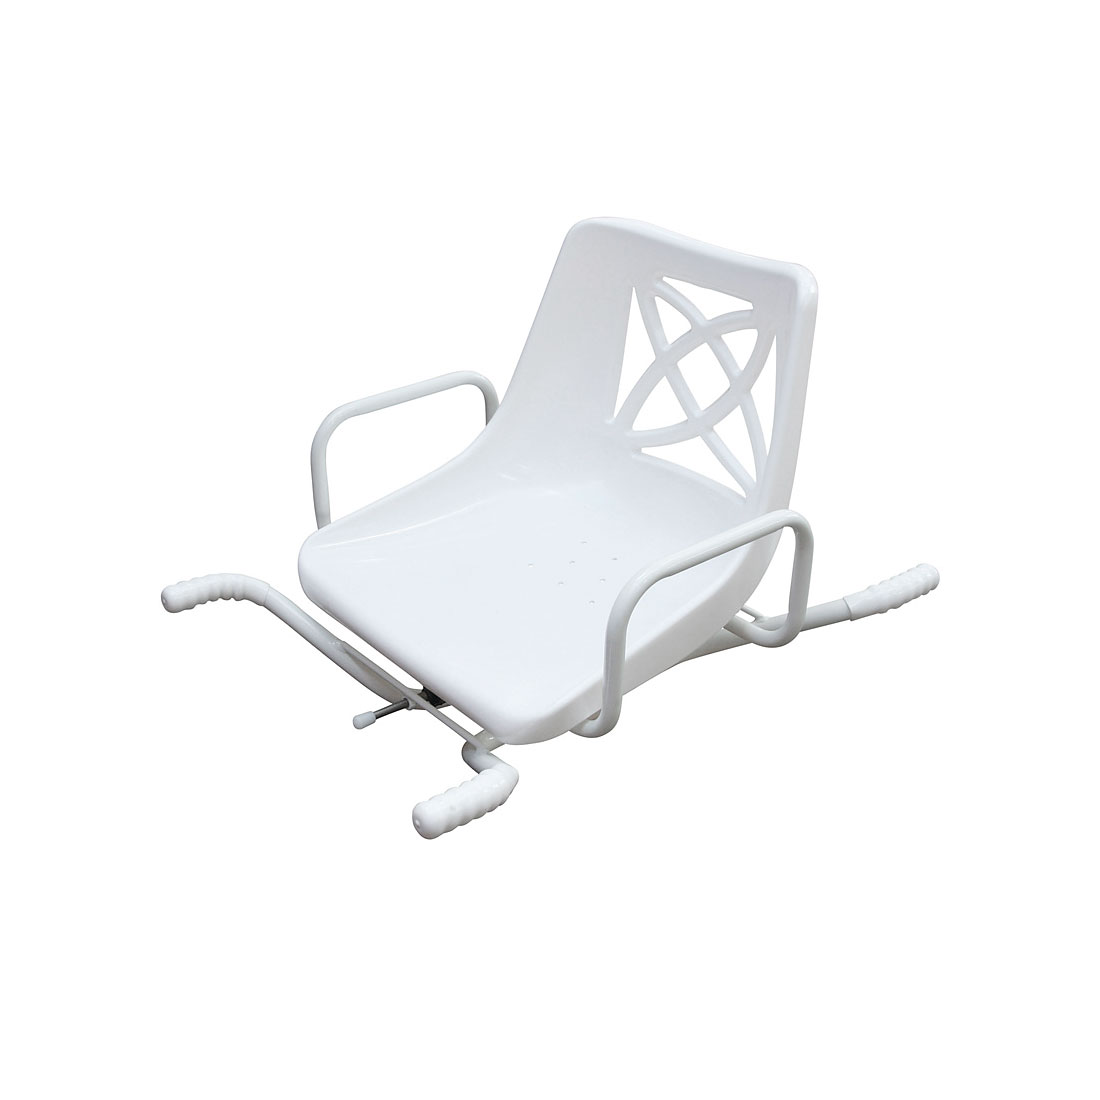 shower chair with swivel seat paddington lounge bath